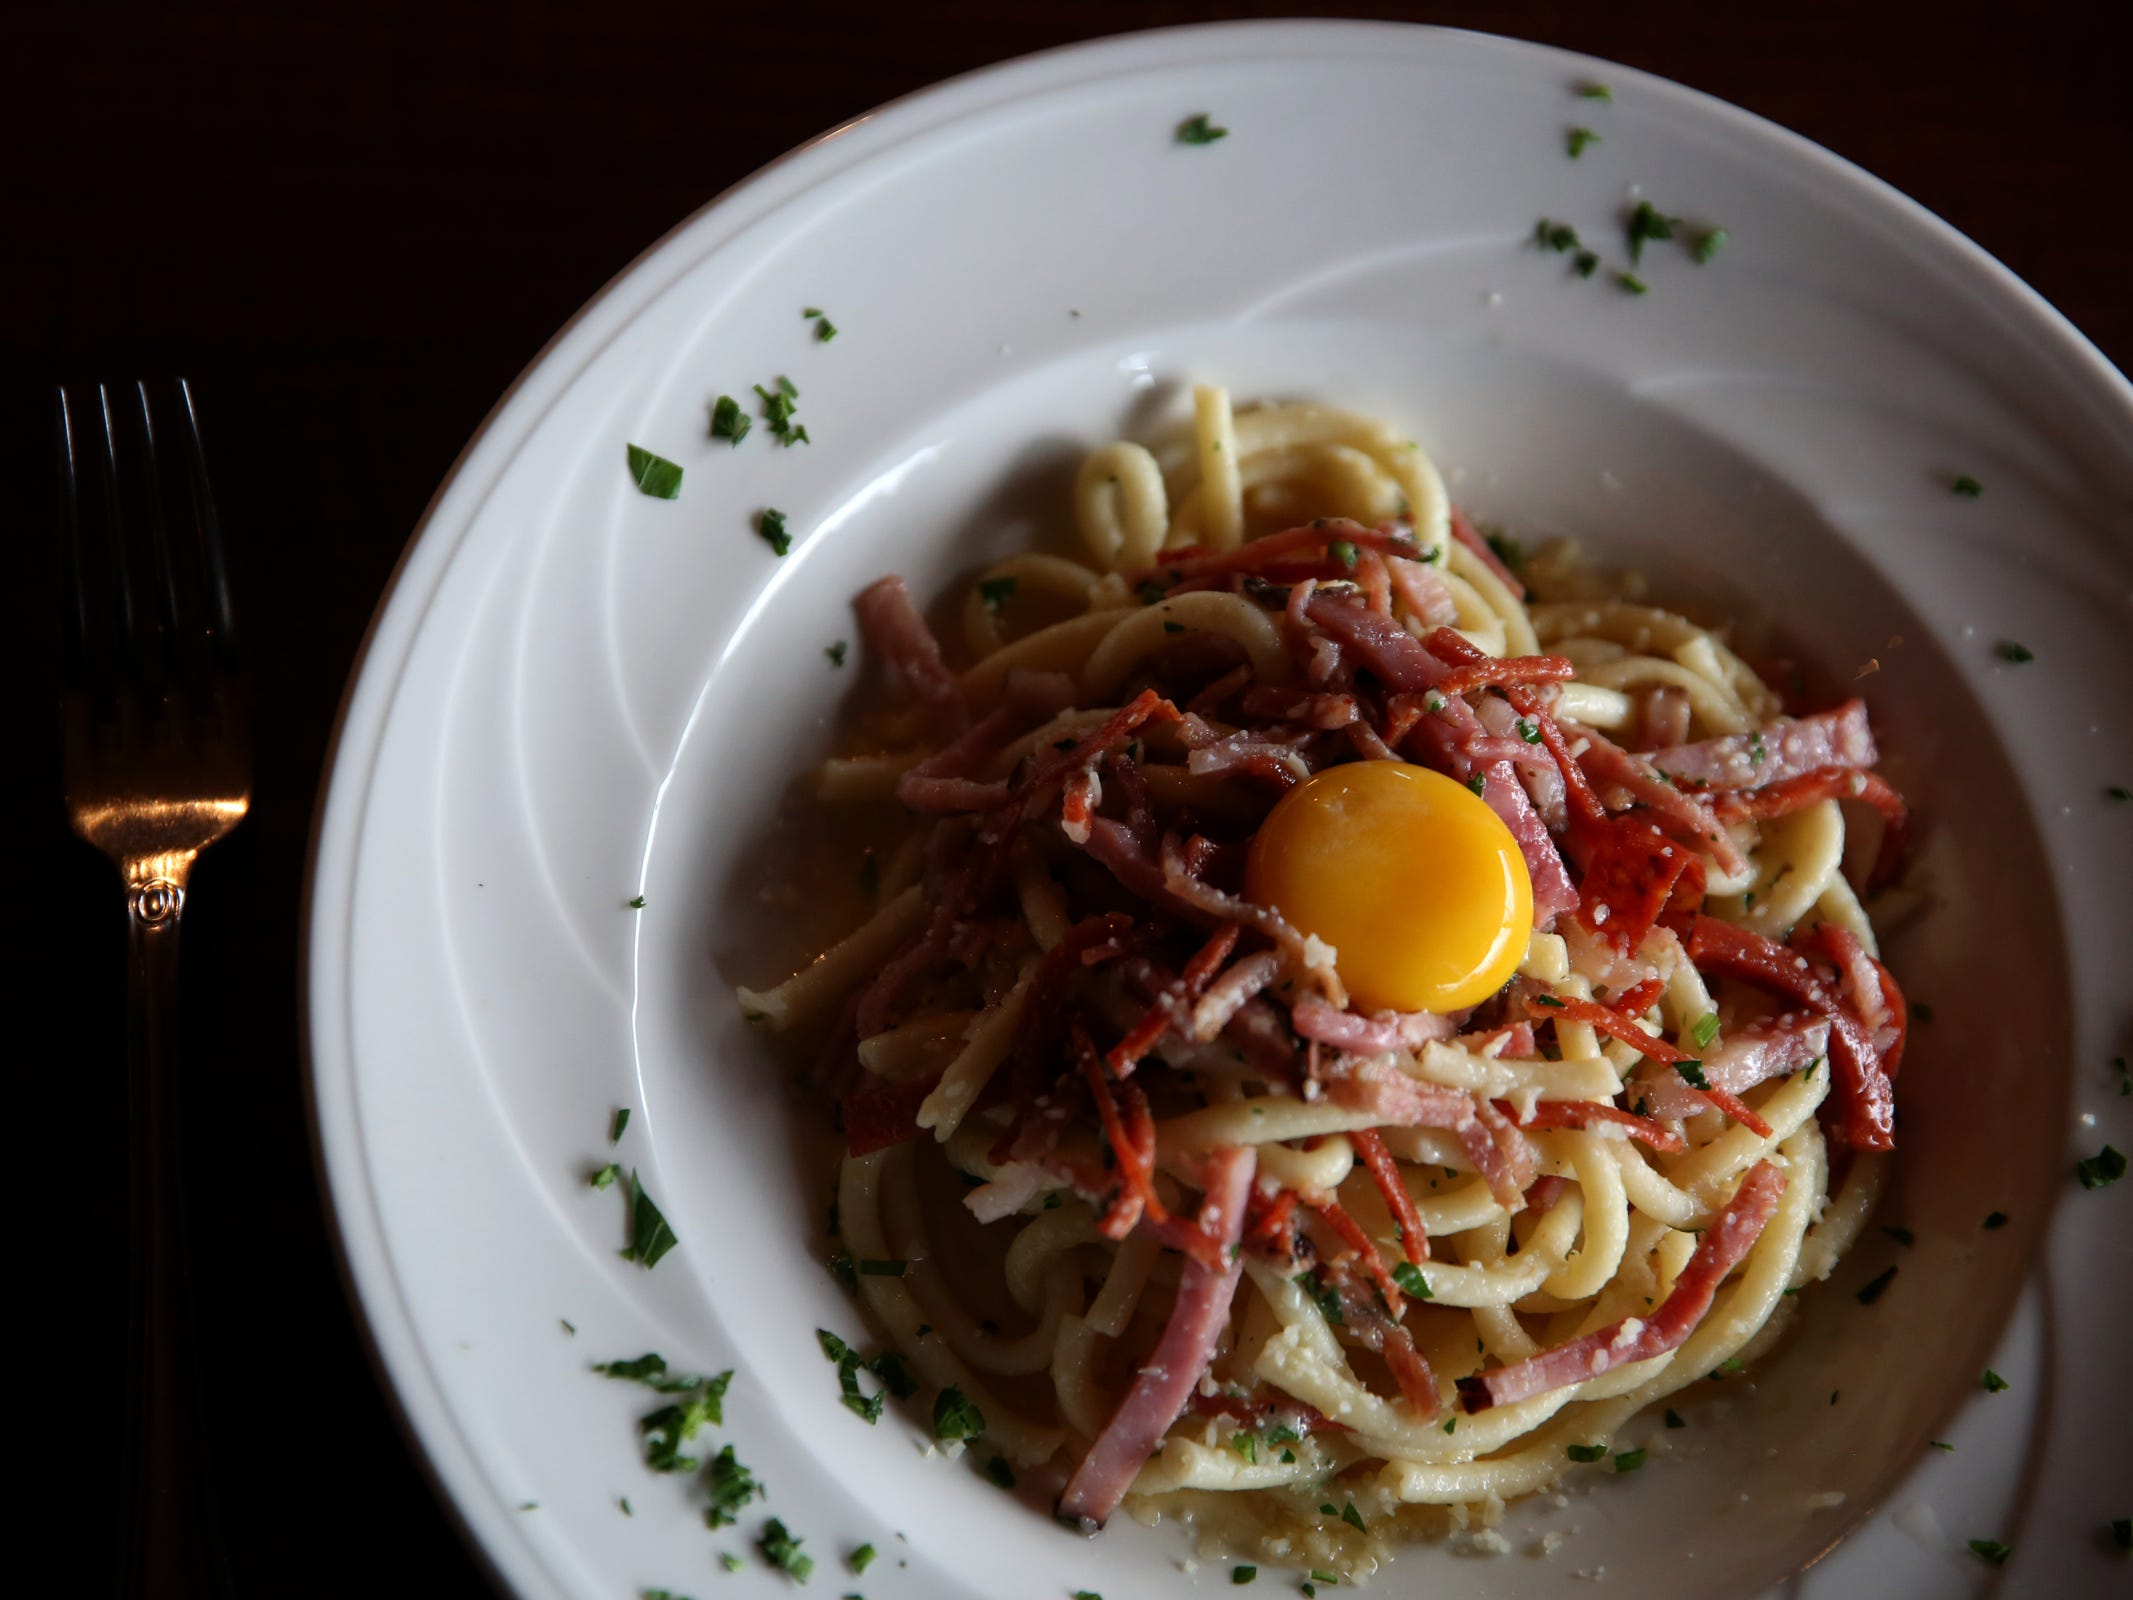 Bucatini carbonara with prosciutto, pancetta, salami, pepperoni, fresh garlic, olive oil, onions, parmesan and egg at Bentley's Grill in Salem on Friday, Feb. 15, 2019.